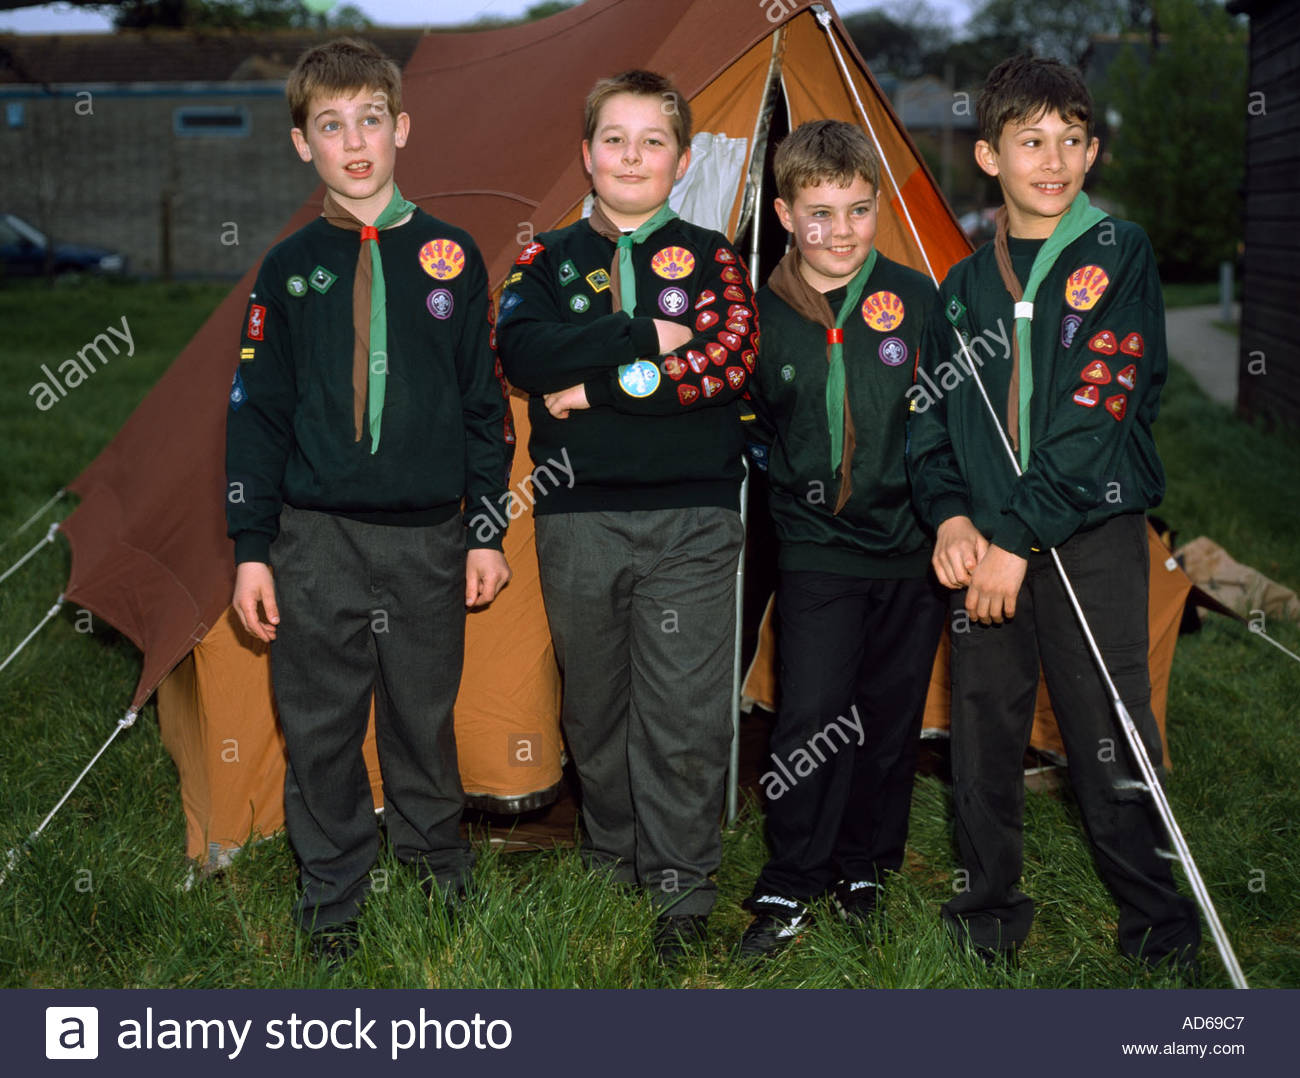 Cub Scouts outside their tent on c& Margate Kent UK  sc 1 st  Alamy & Cub Scouts outside their tent on camp Margate Kent UK Stock Photo ...